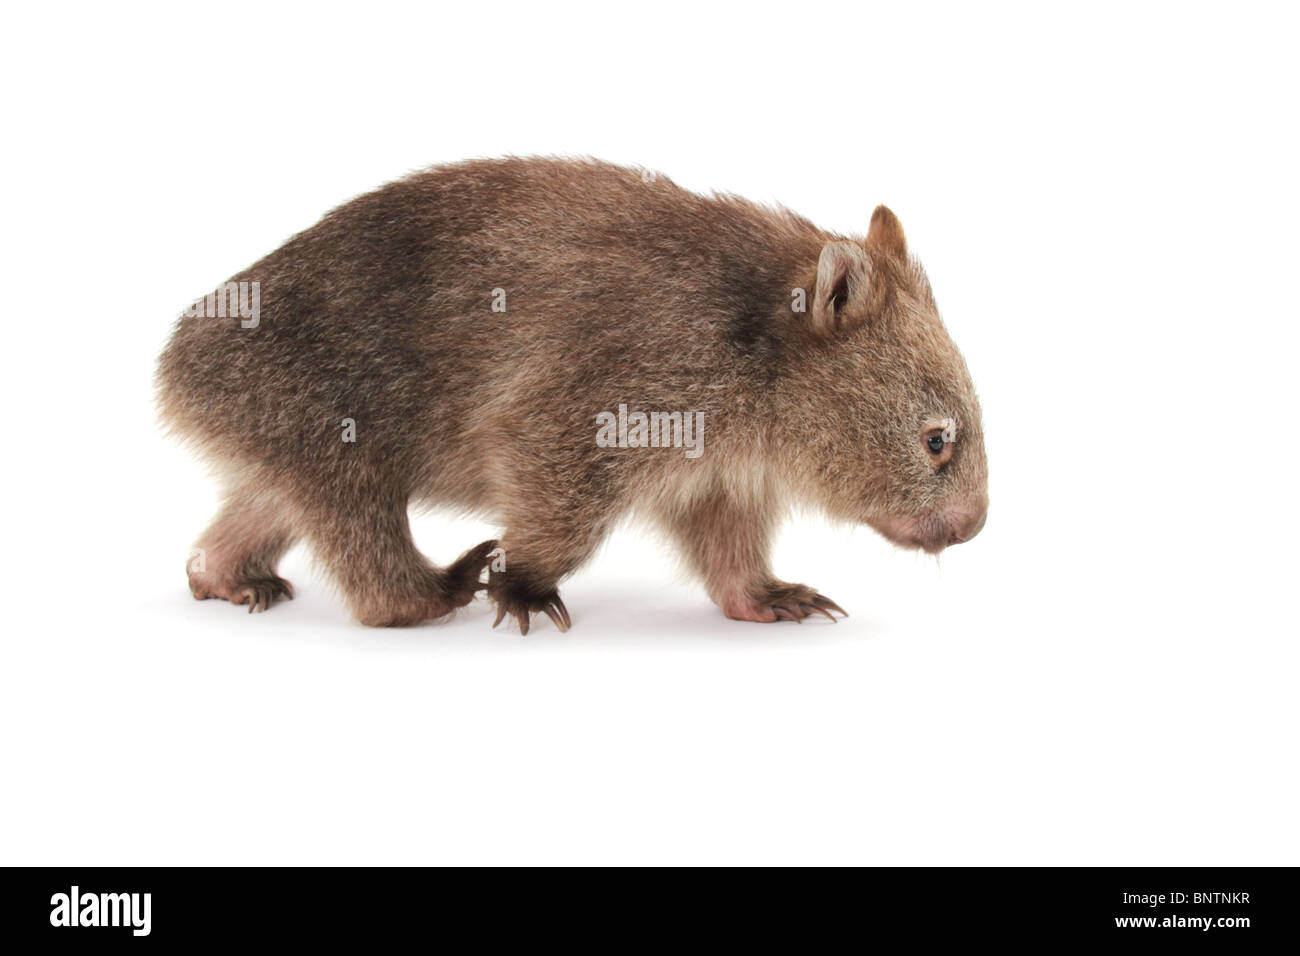 Common or bare nosed wombat, photographed in a studio Stock Photo